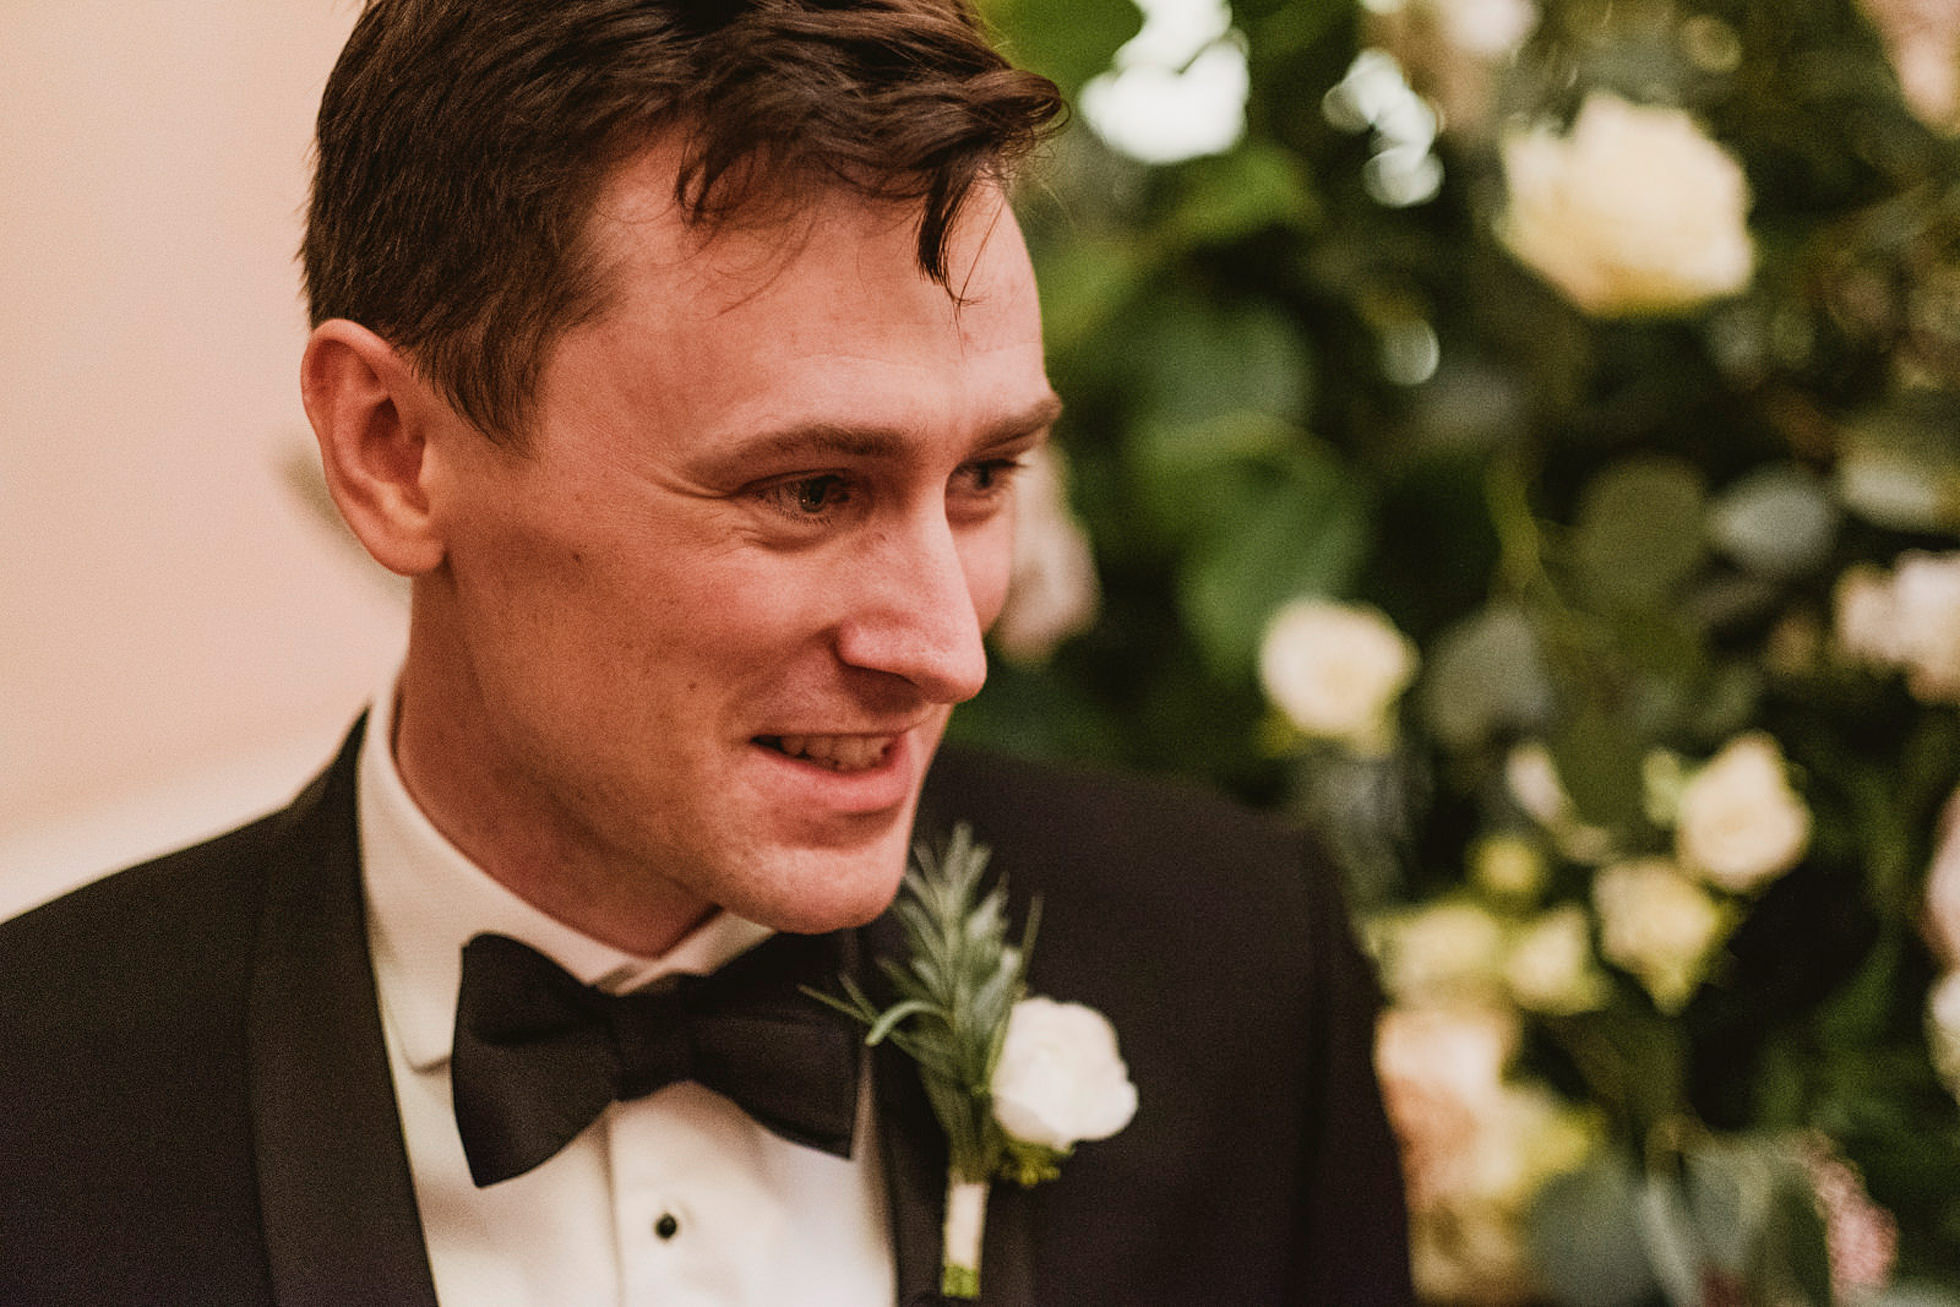 emotional groom seeing bride for first time